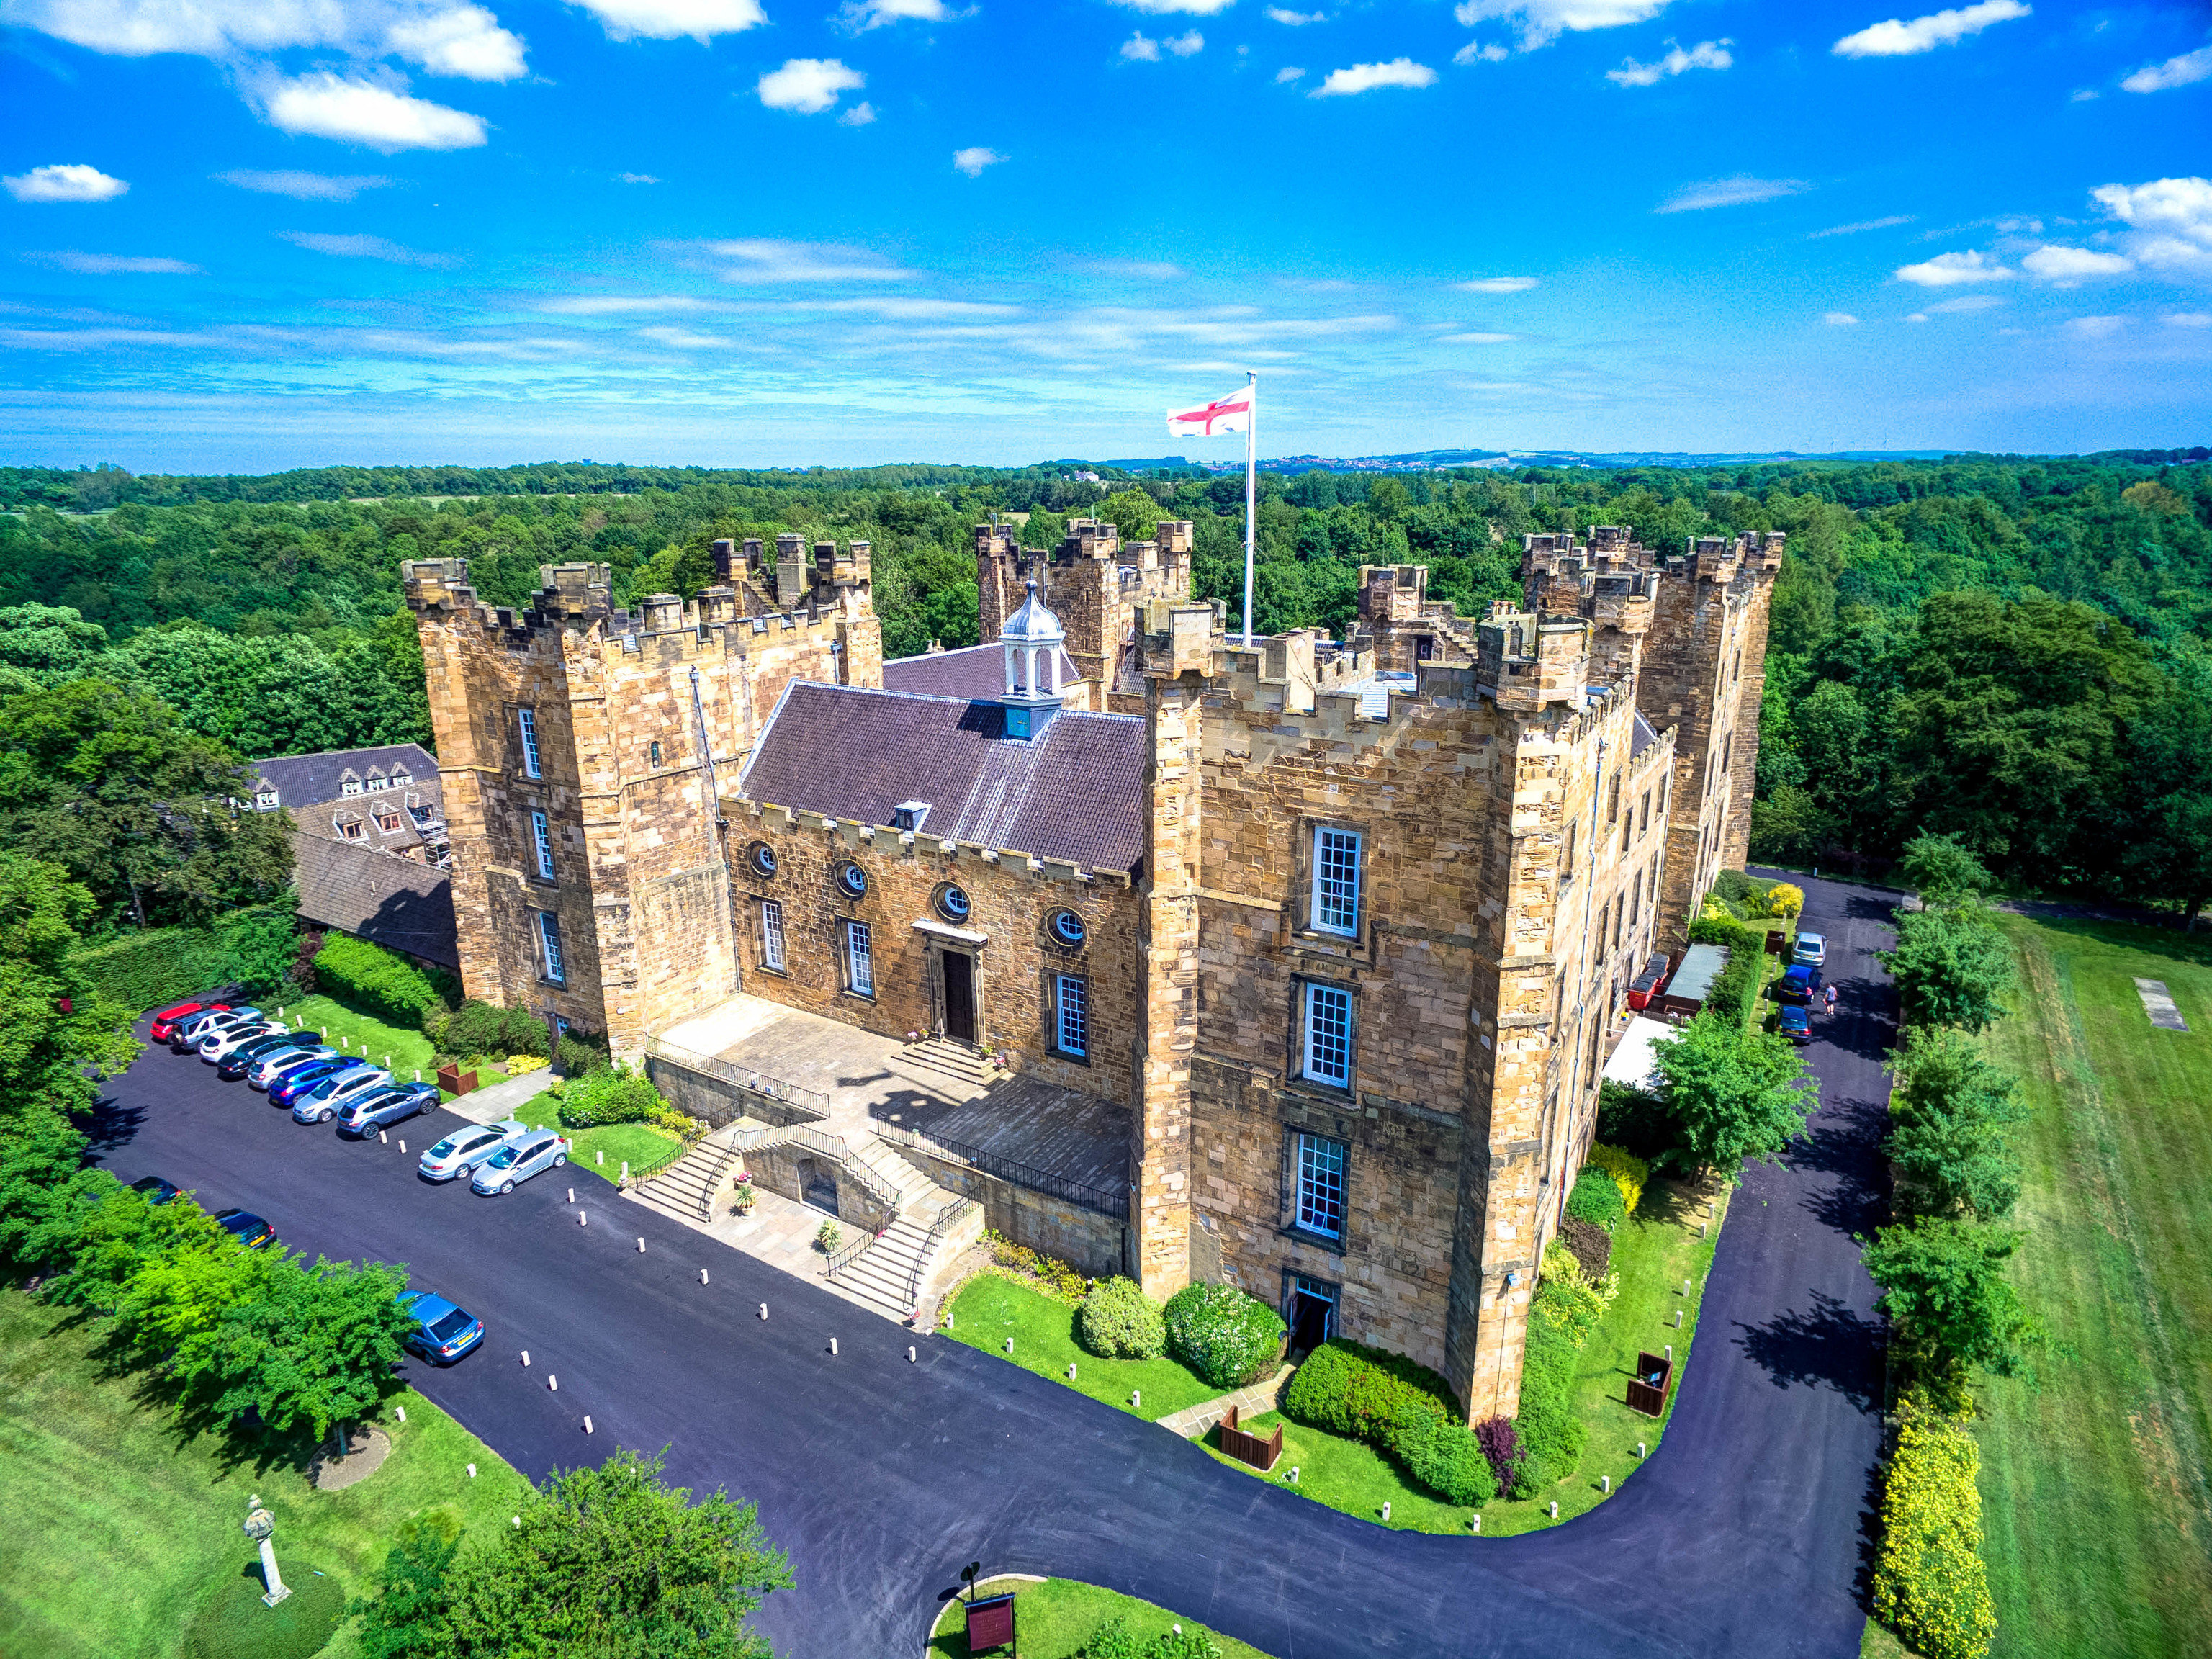 Hotels sky grass outdoor historic site landmark archaeological site castle building estate Ruins tourism fortification vacation château aerial photography canyon mansion terrain